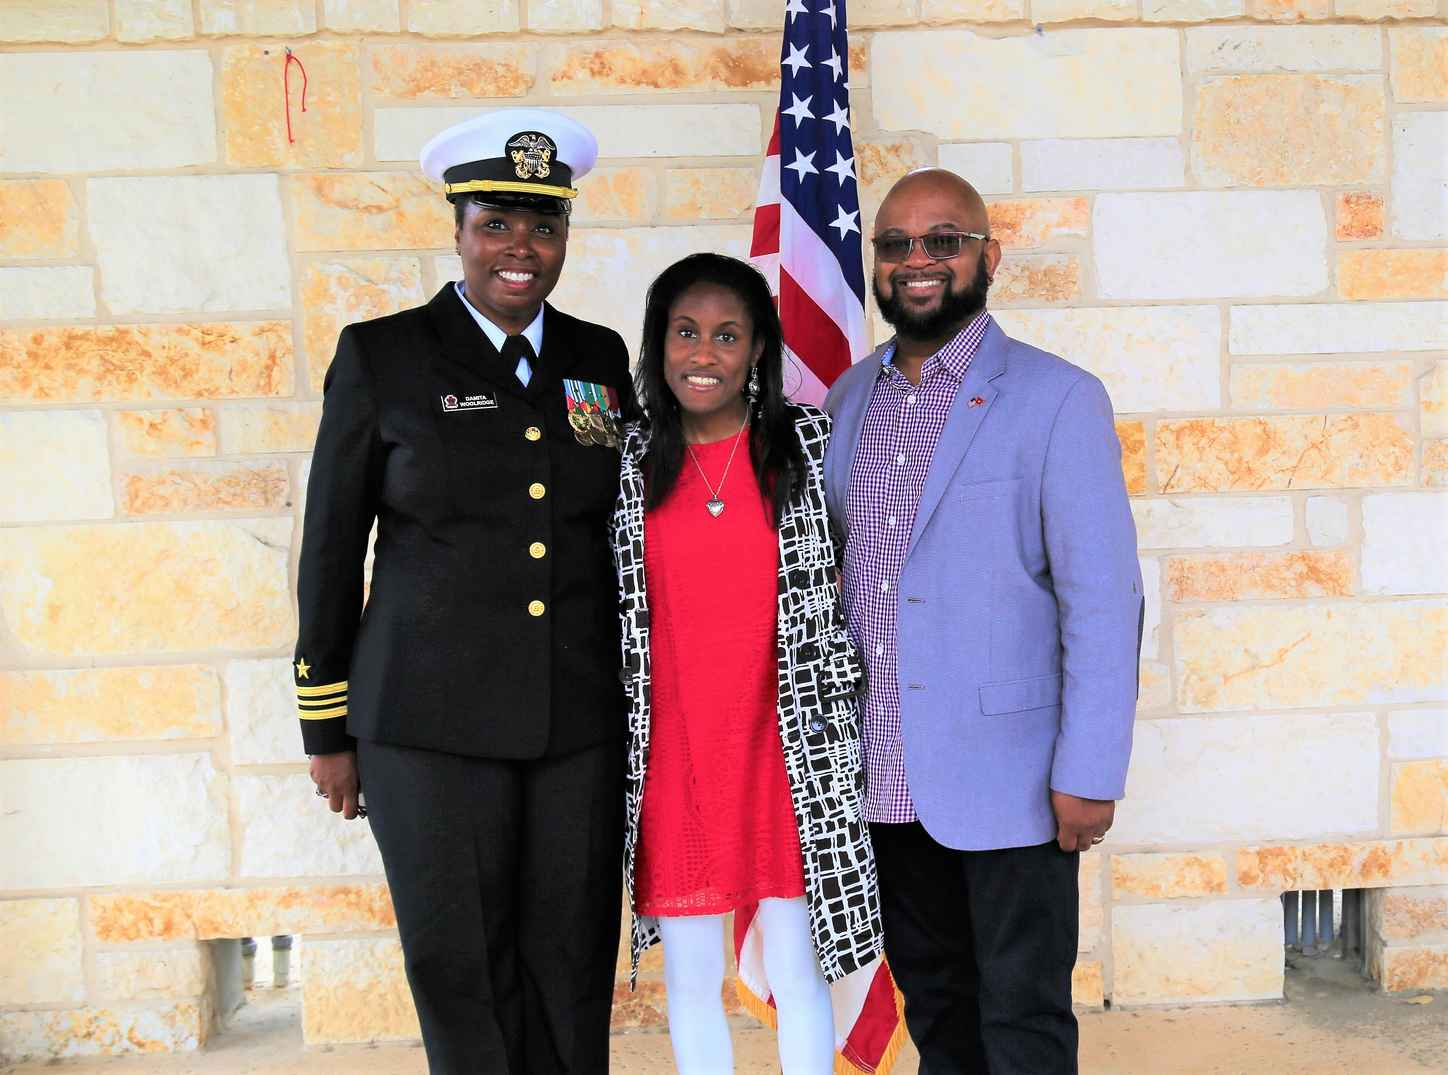 LCDR Dee Woolridge with family